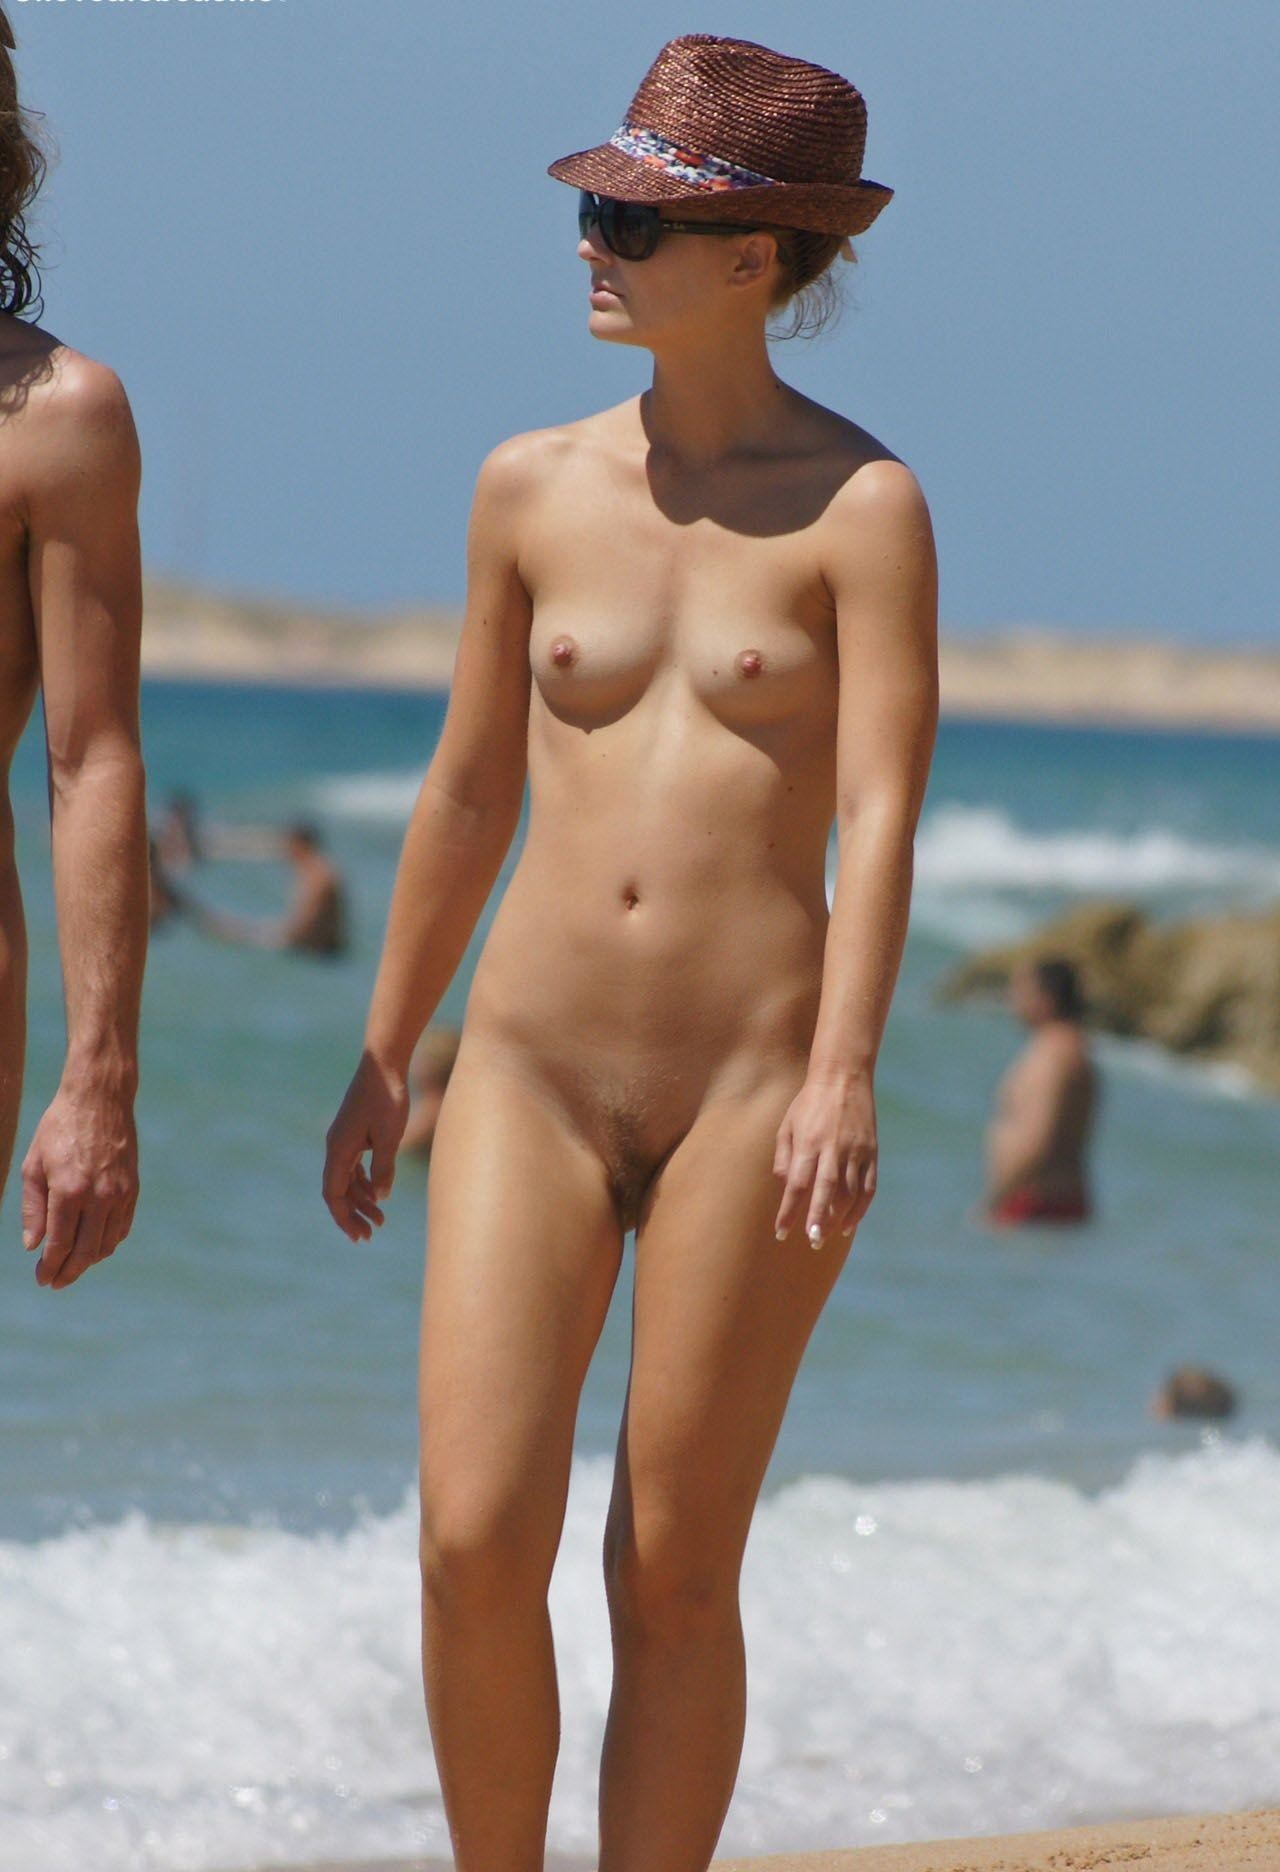 nudists-girls-boobs-beach-topless-mix-vol7-23